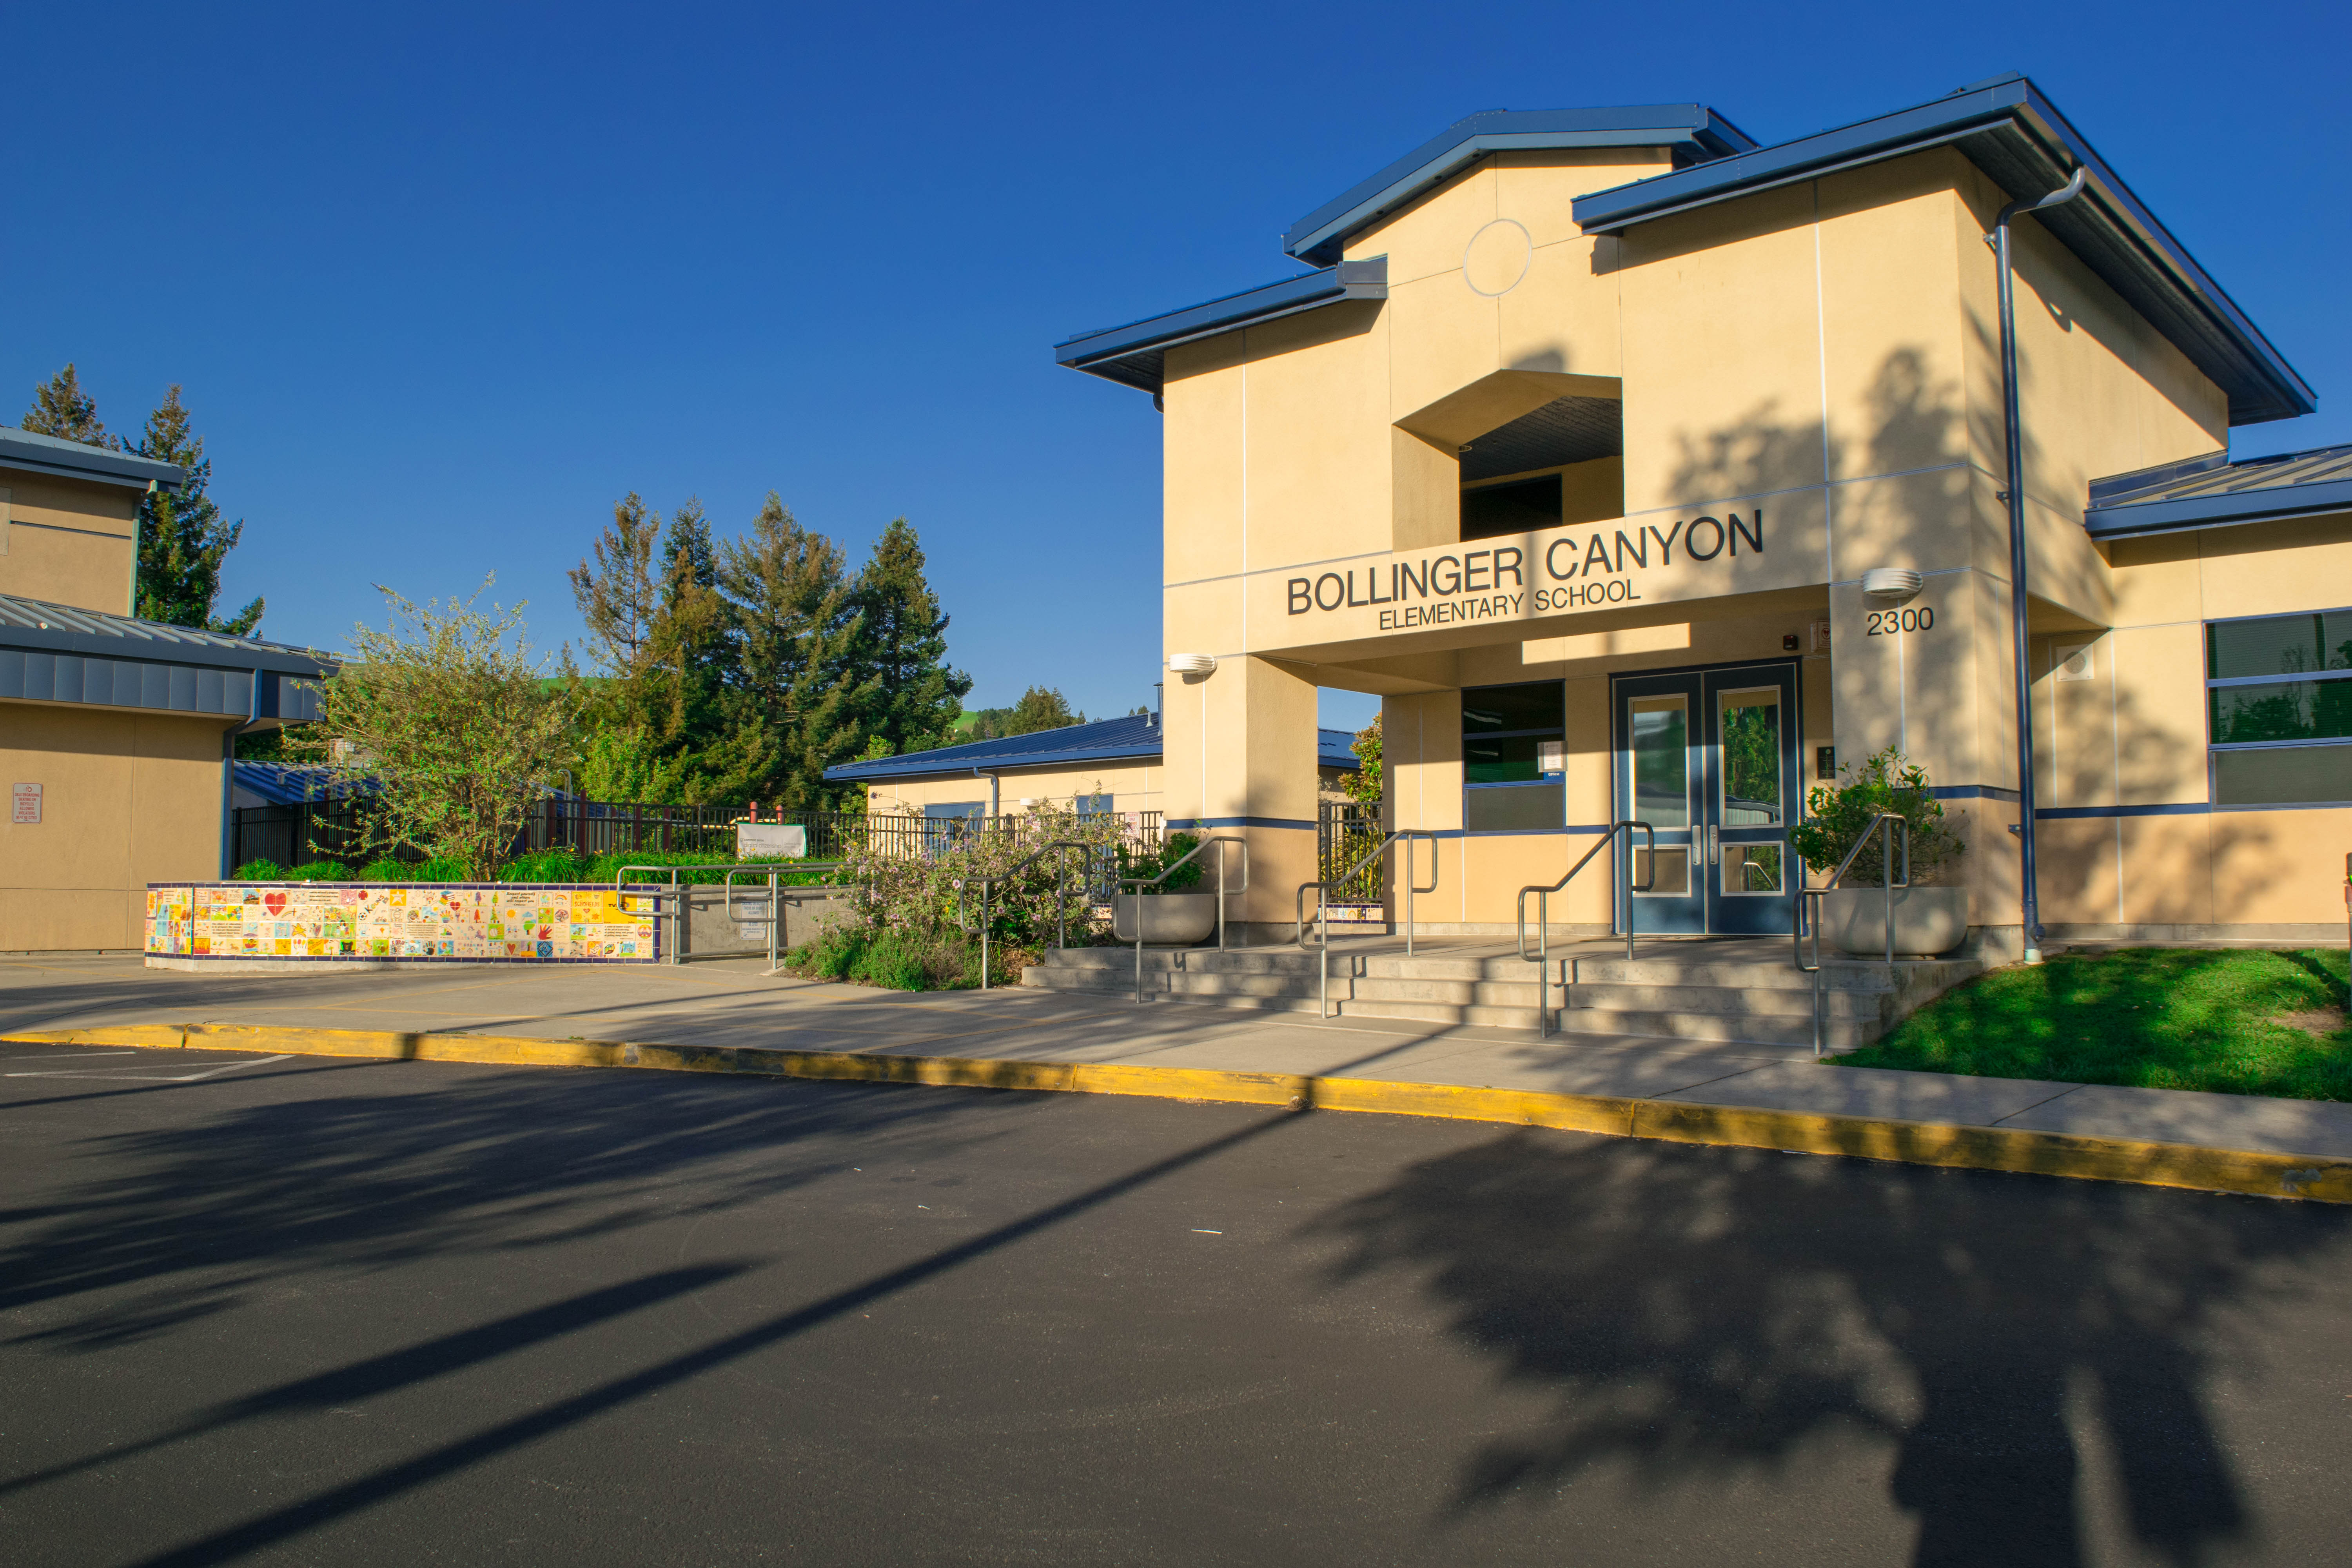 Bollinger Canyon Elementary School